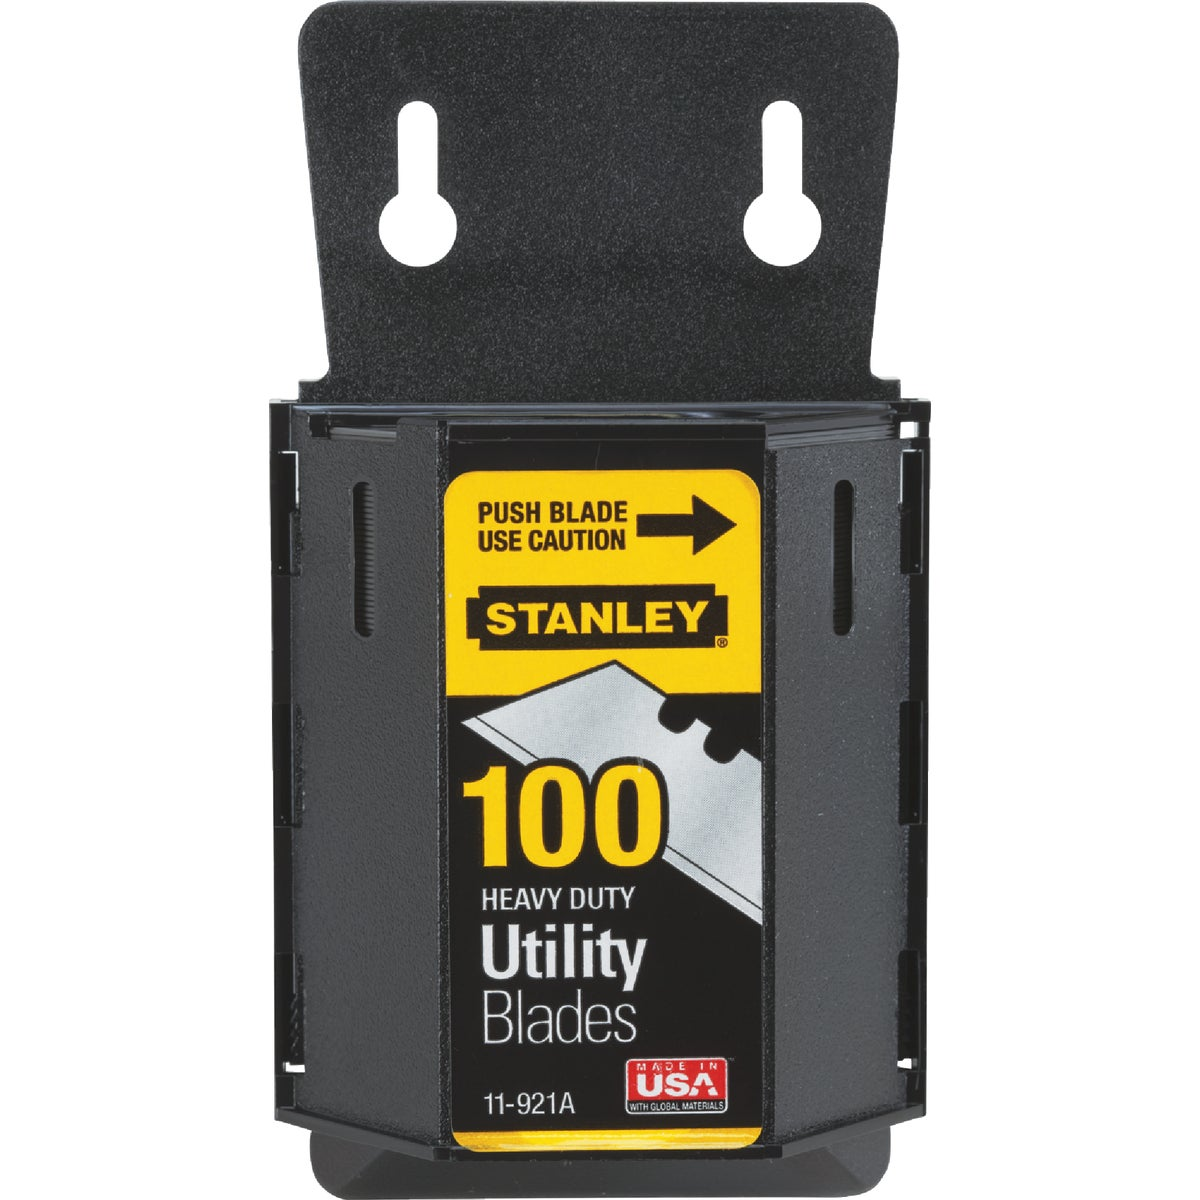 KNIFE BLADE - 11-921A by Stanley Tools